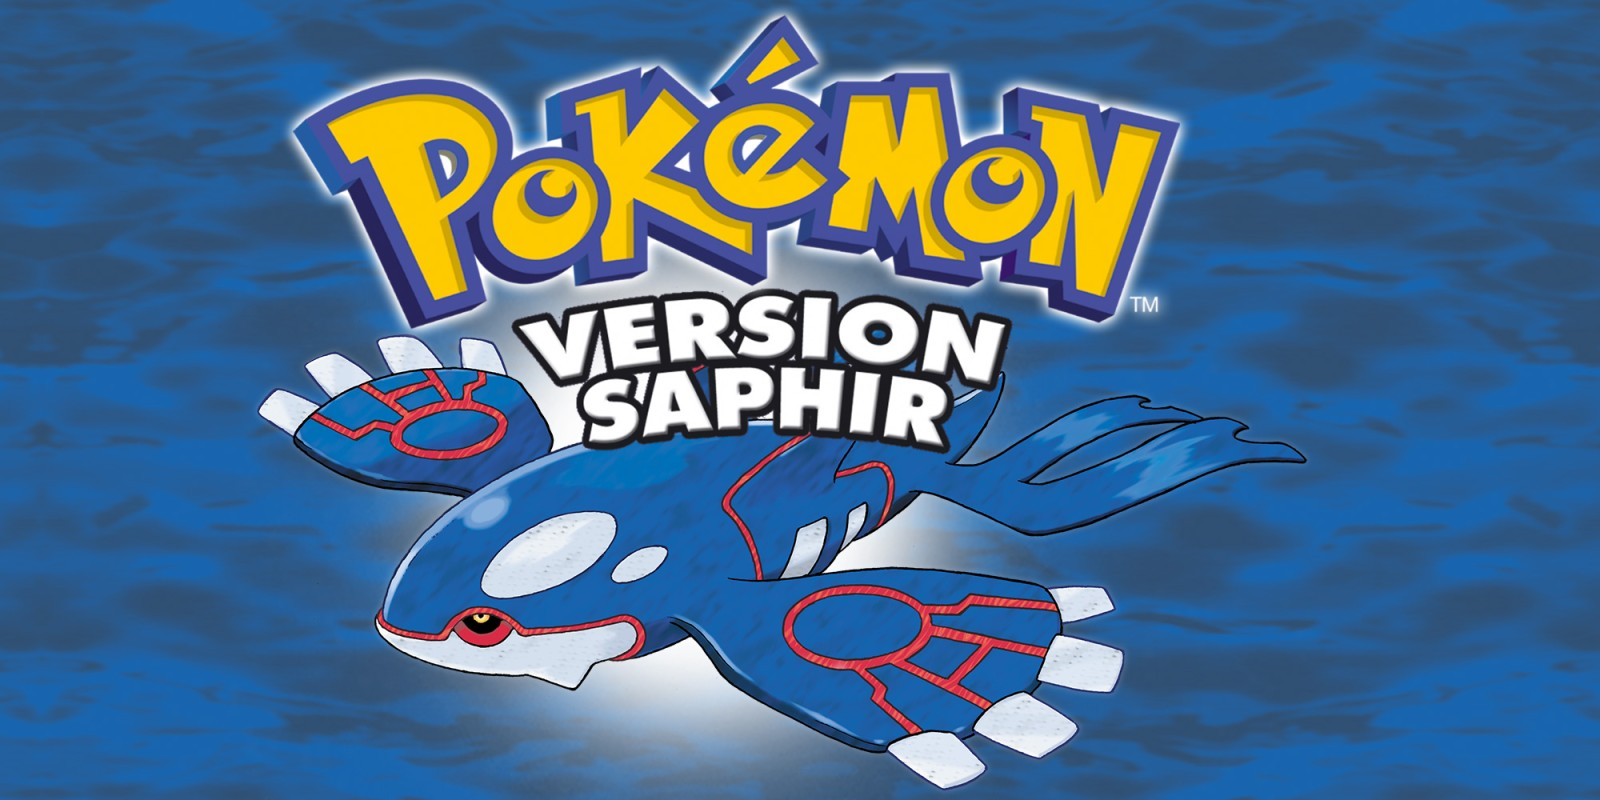 Pokémon Version saphir